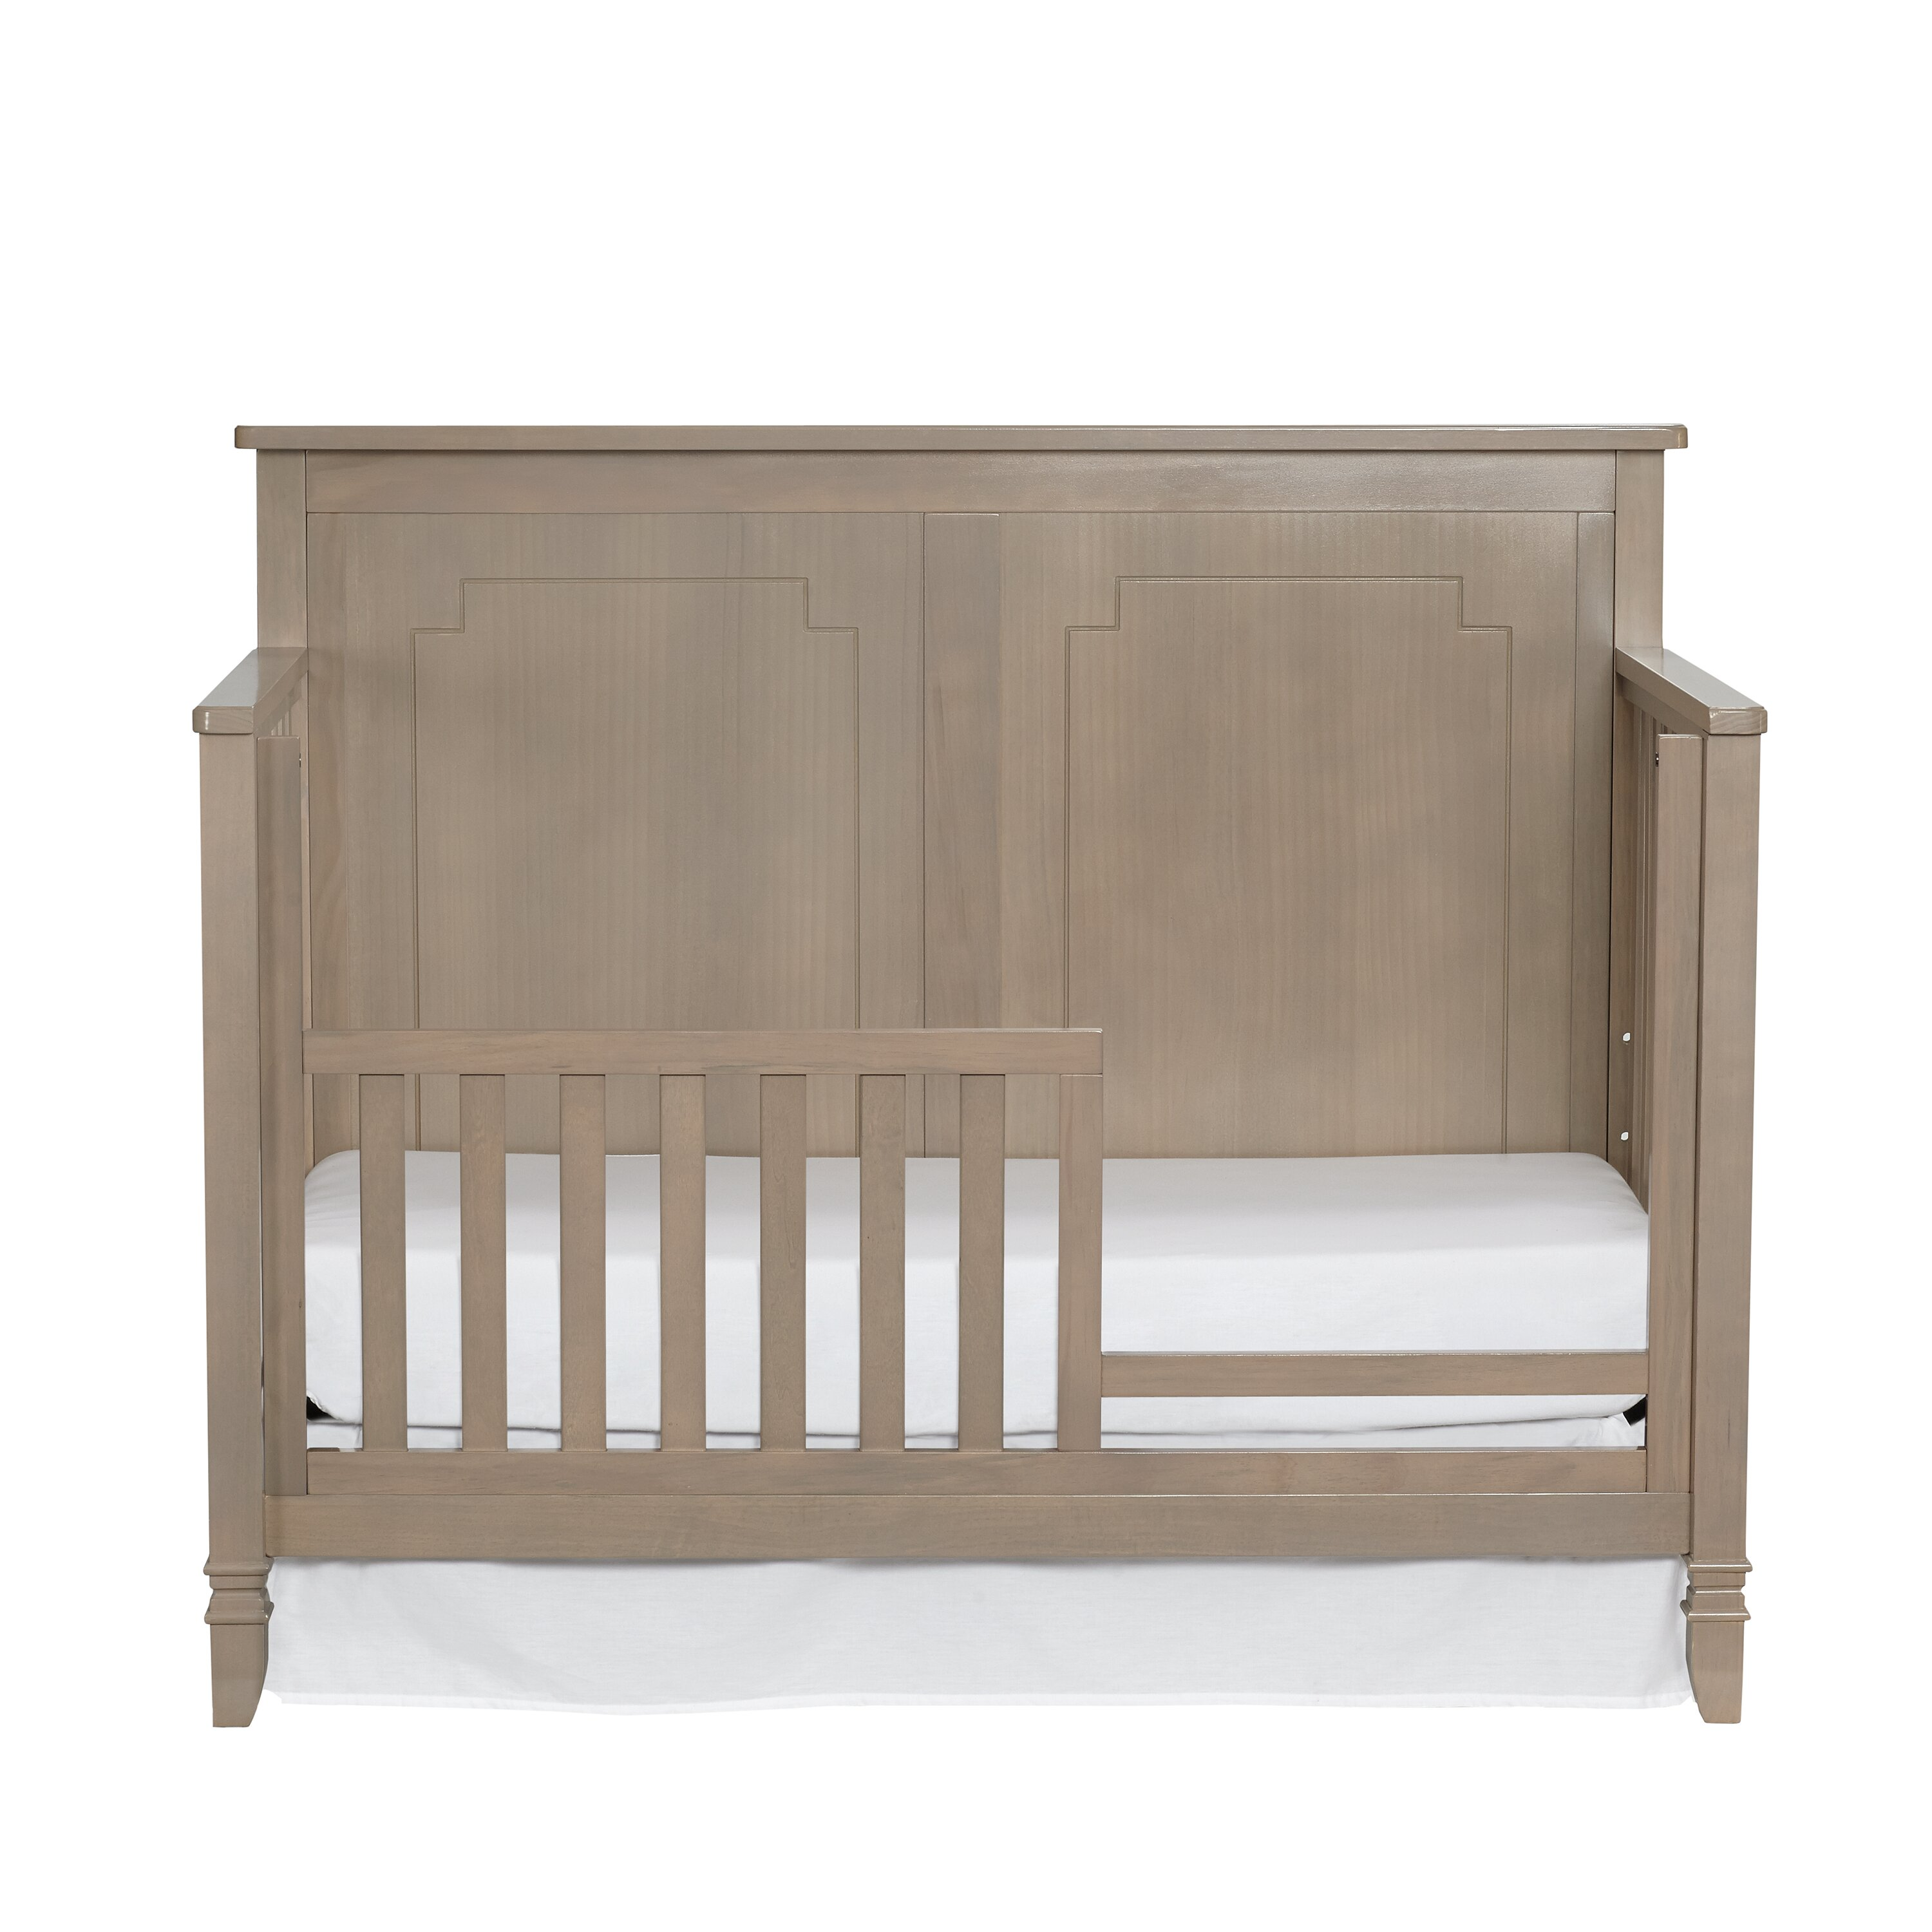 Crib for sale essex - Suite Bebe Asher Lifetime 4 In 1 Convertible Crib